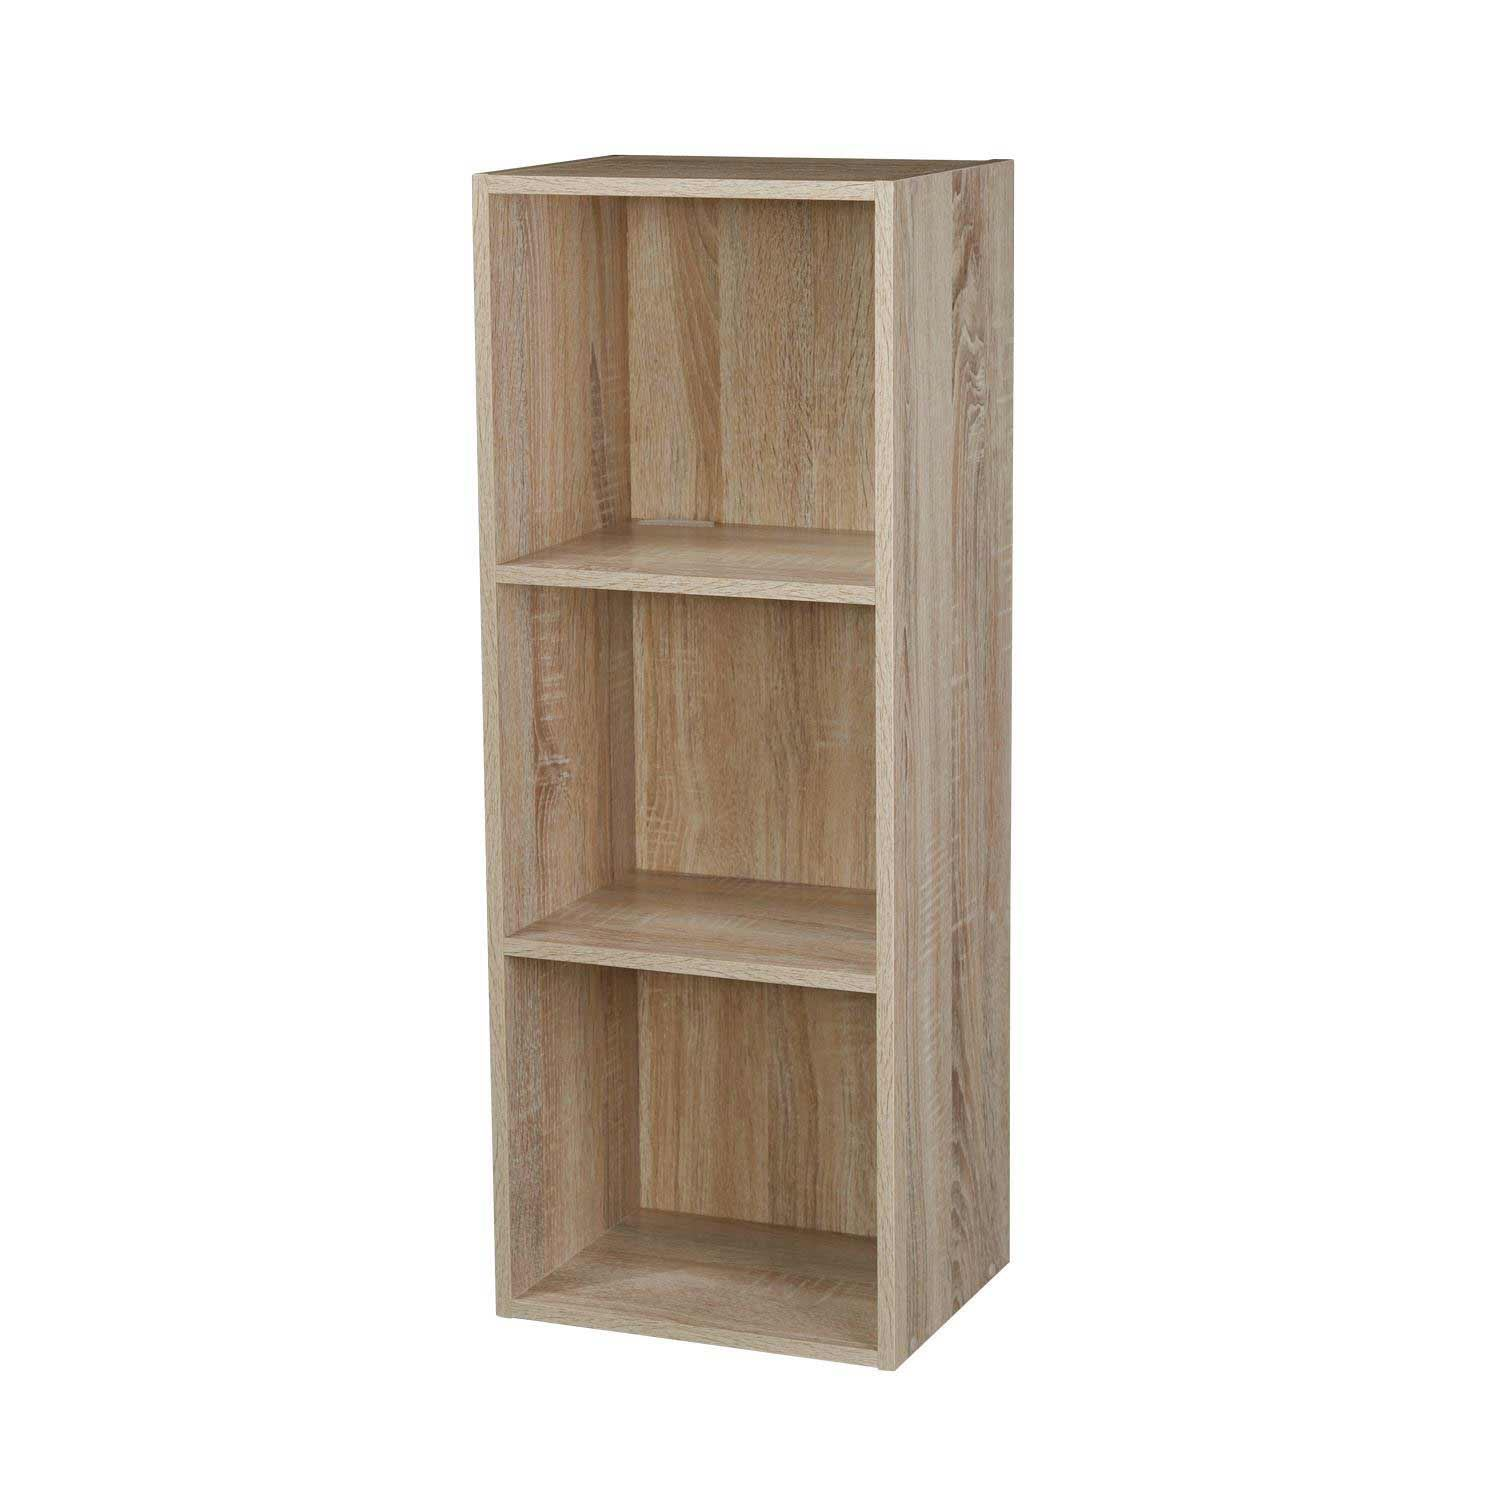 Wooden-Storage-Unit-Cube-2-3-4-Tier-Strong-Bookcase-Shelving-Home-Office-Display thumbnail 12